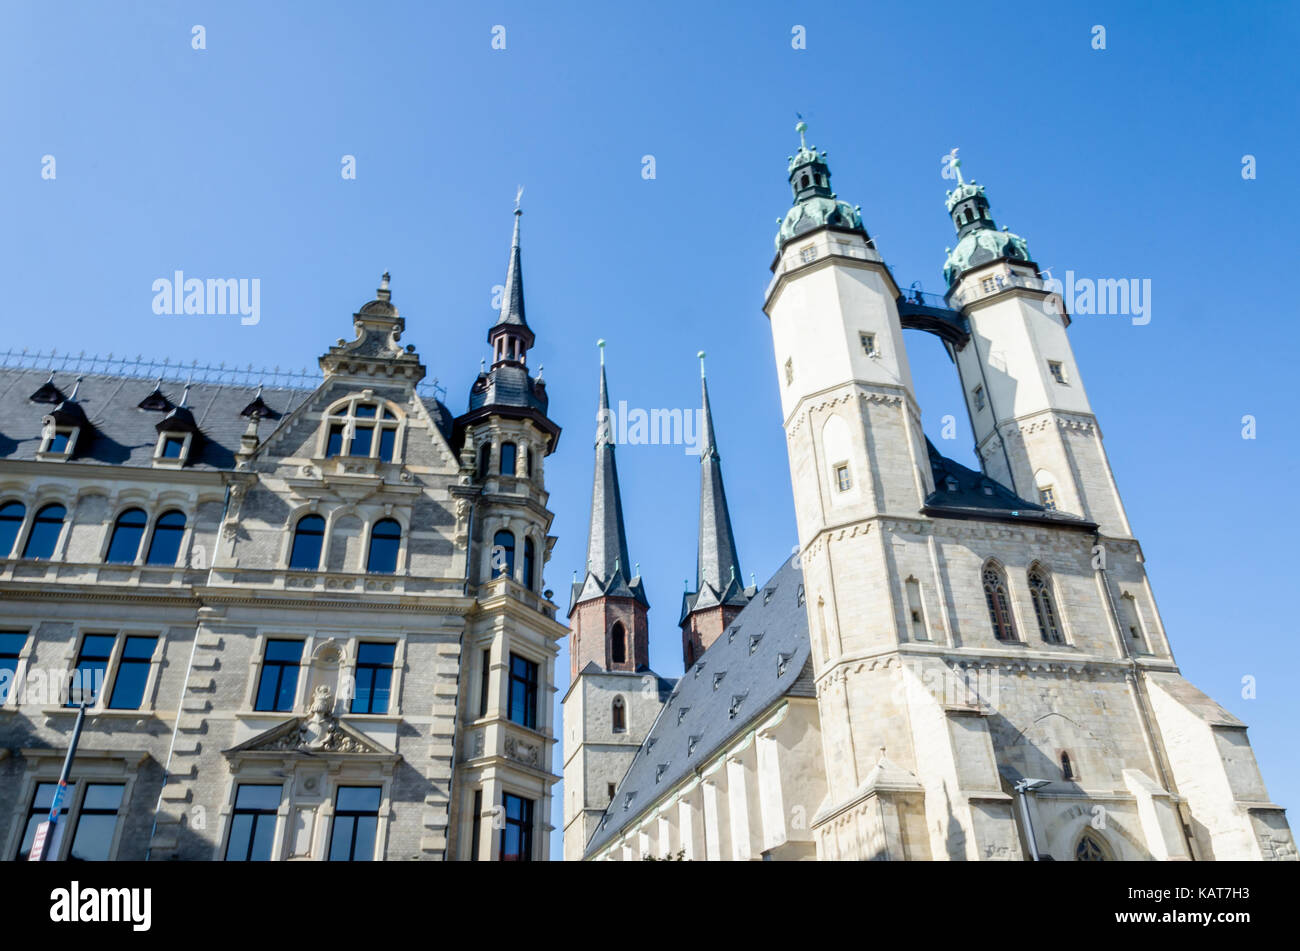 urban germany halle stockfotos urban germany halle bilder alamy. Black Bedroom Furniture Sets. Home Design Ideas